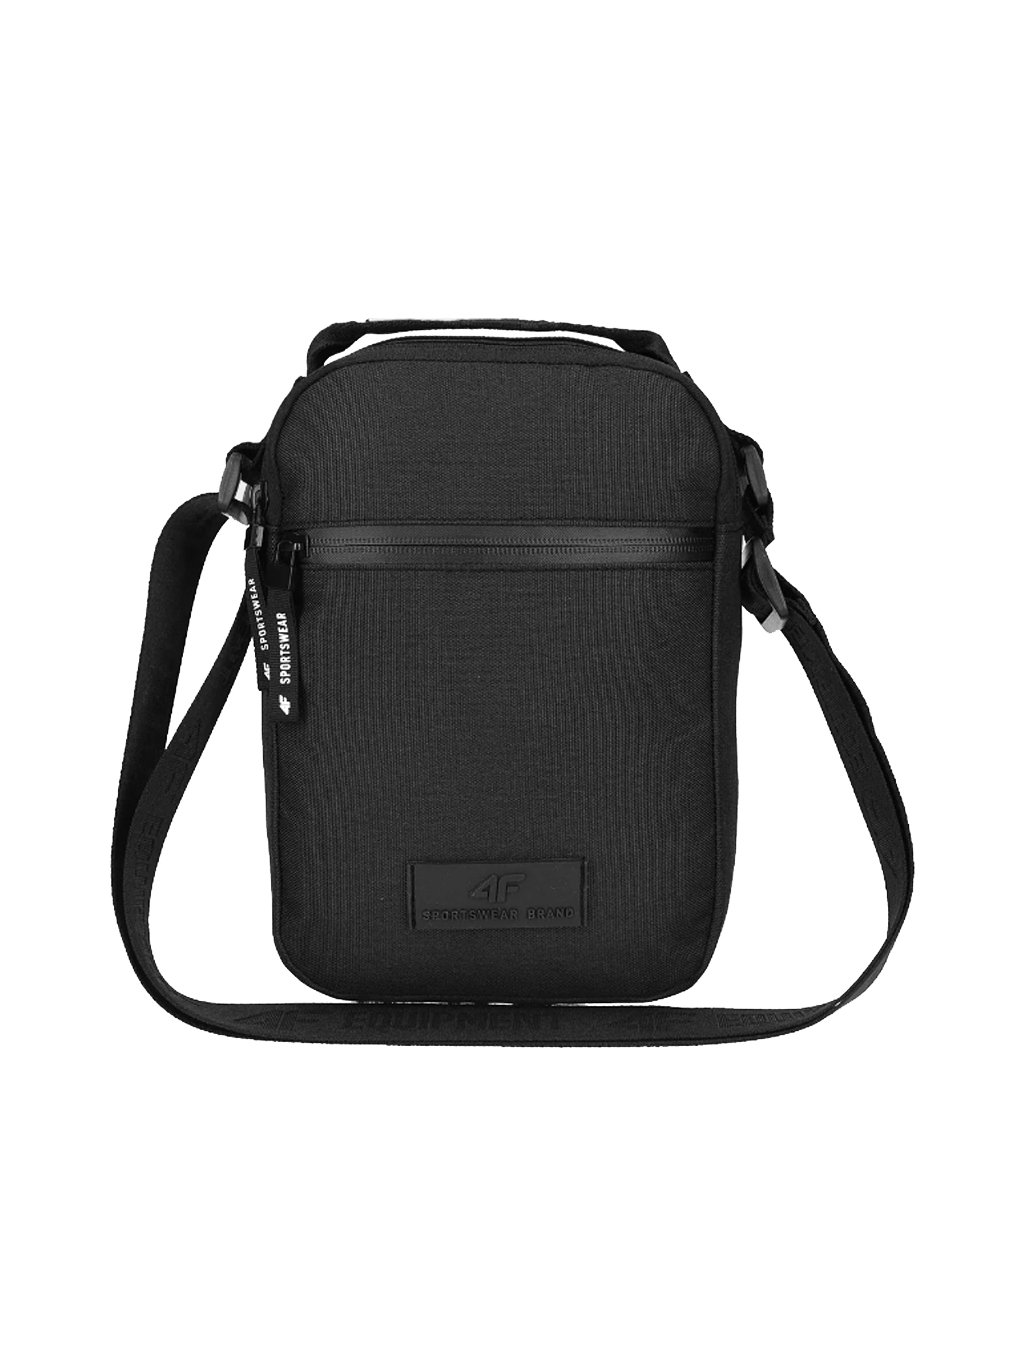 4F SHOULDER BAG H4L20-TRU003-20S